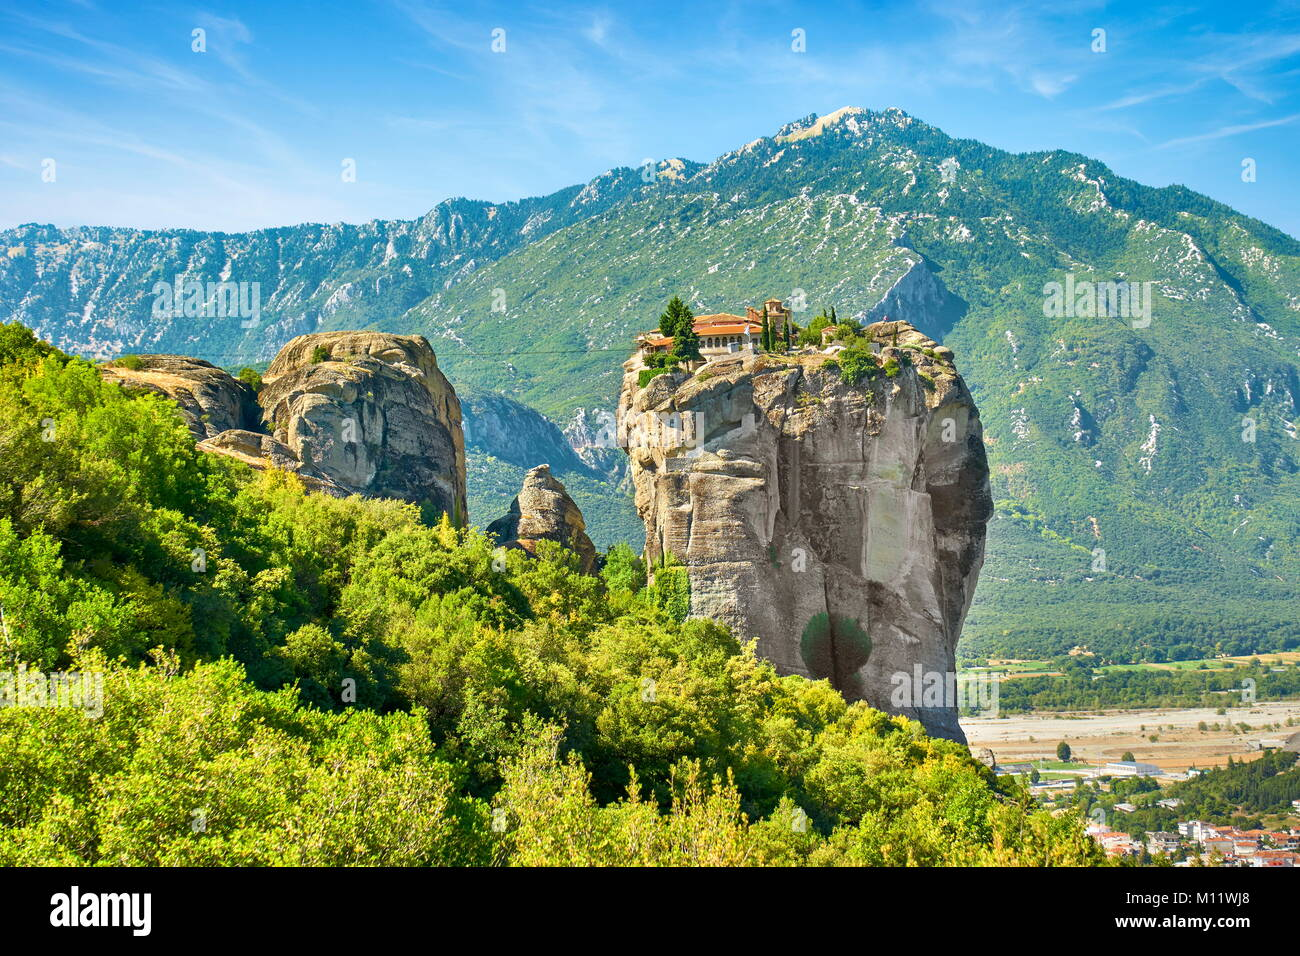 Holy Trinity Monastery at Meteora, Greece - Stock Image